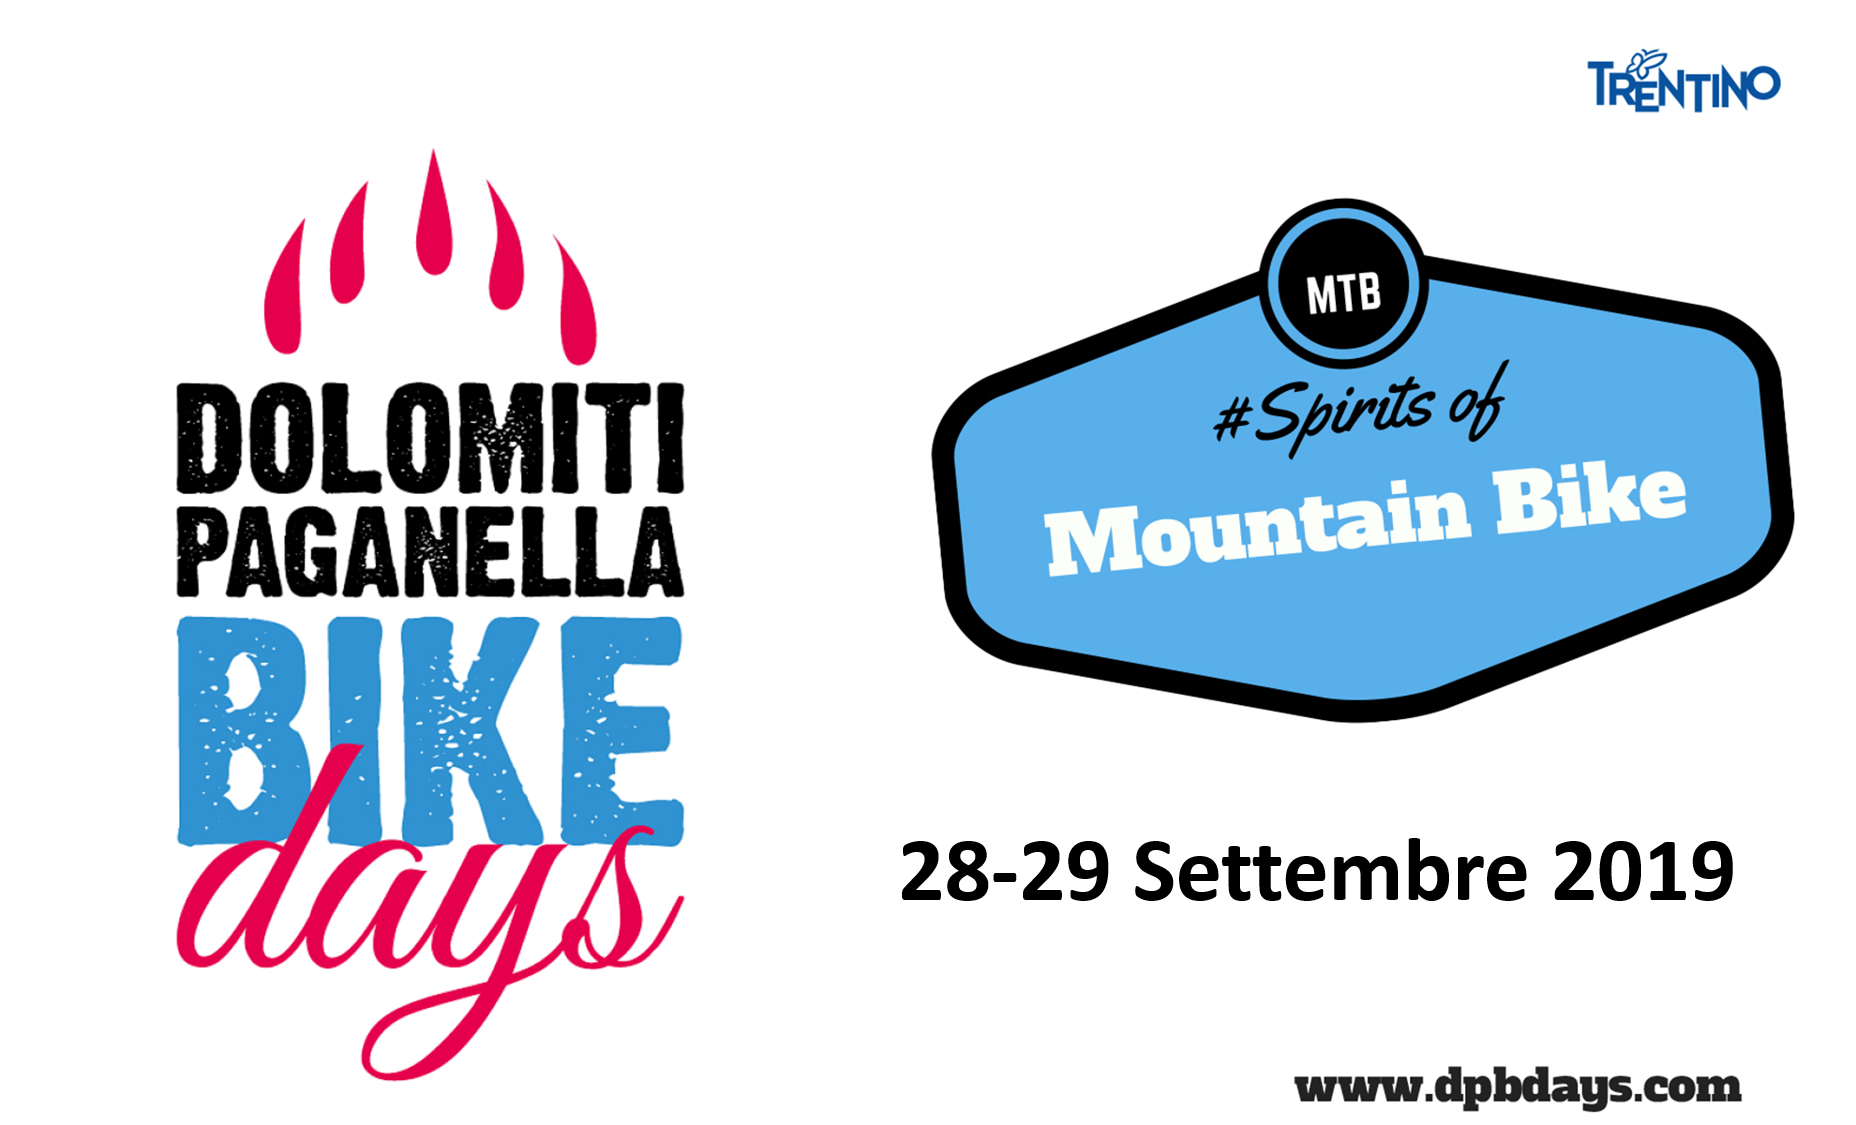 DOLOMITI PAGANELLA BIKE DAYS 2019